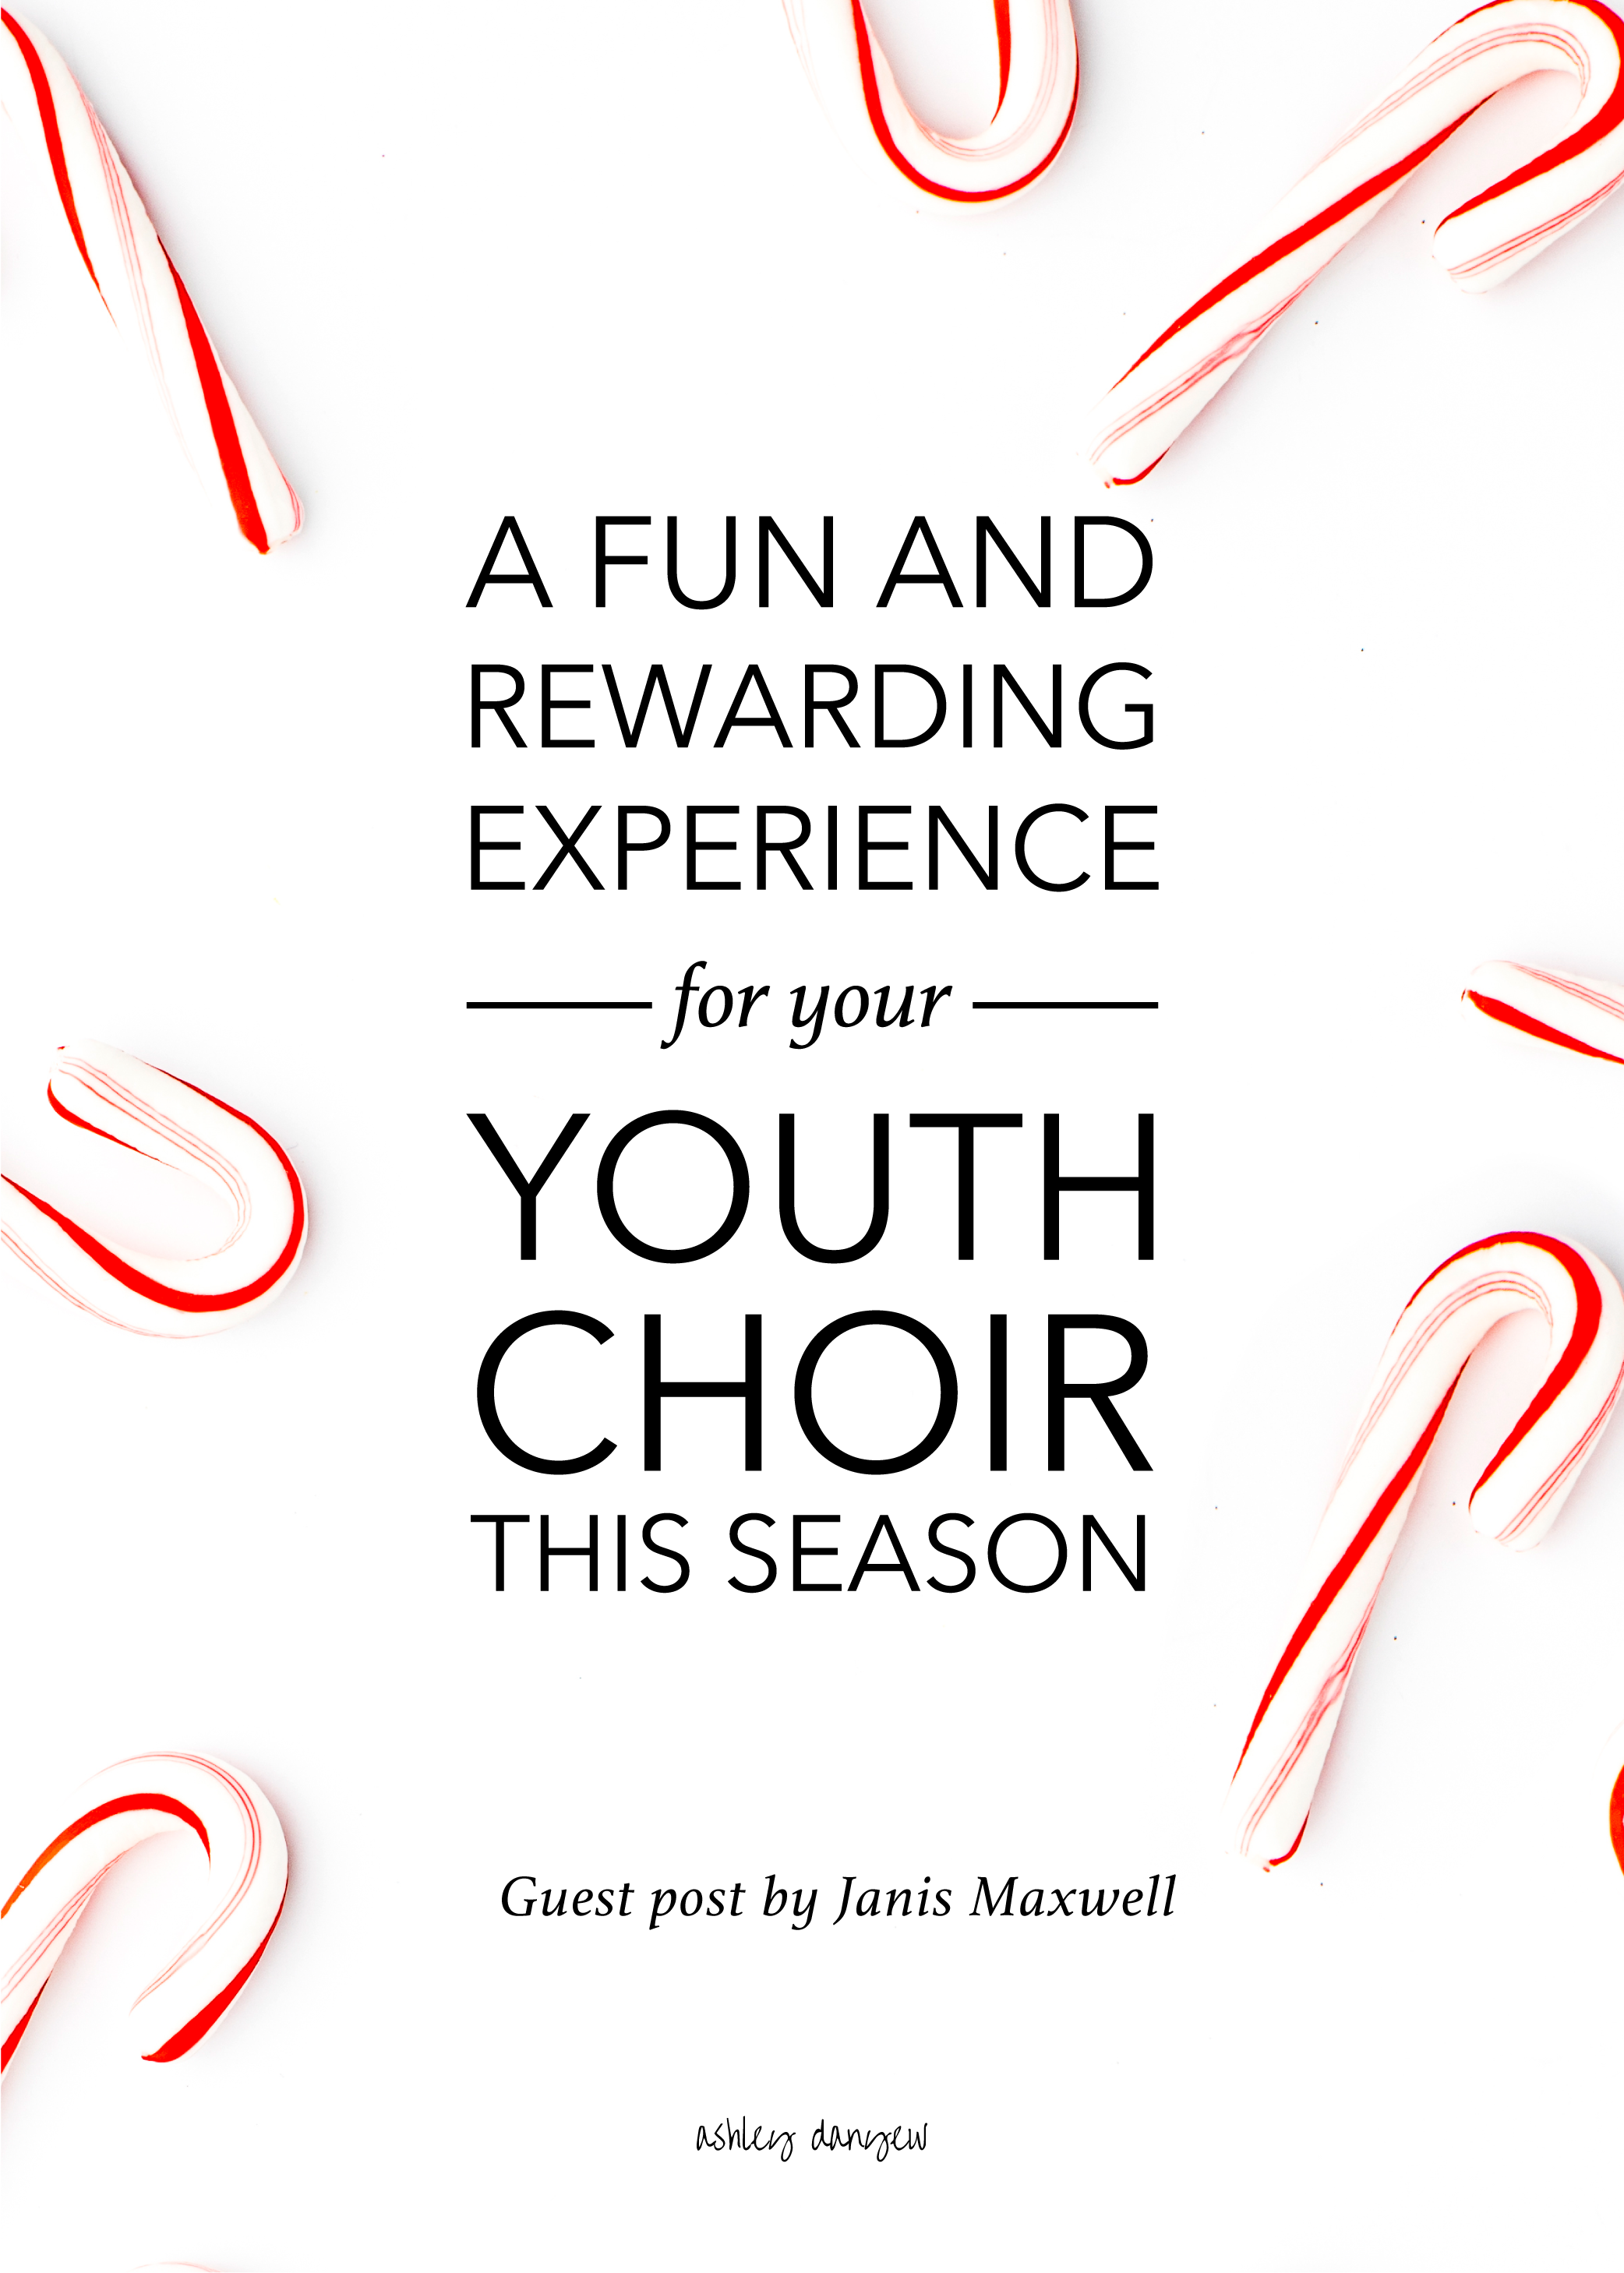 A Fun and Rewarding Experience for Your Youth Choir This Season-70.png